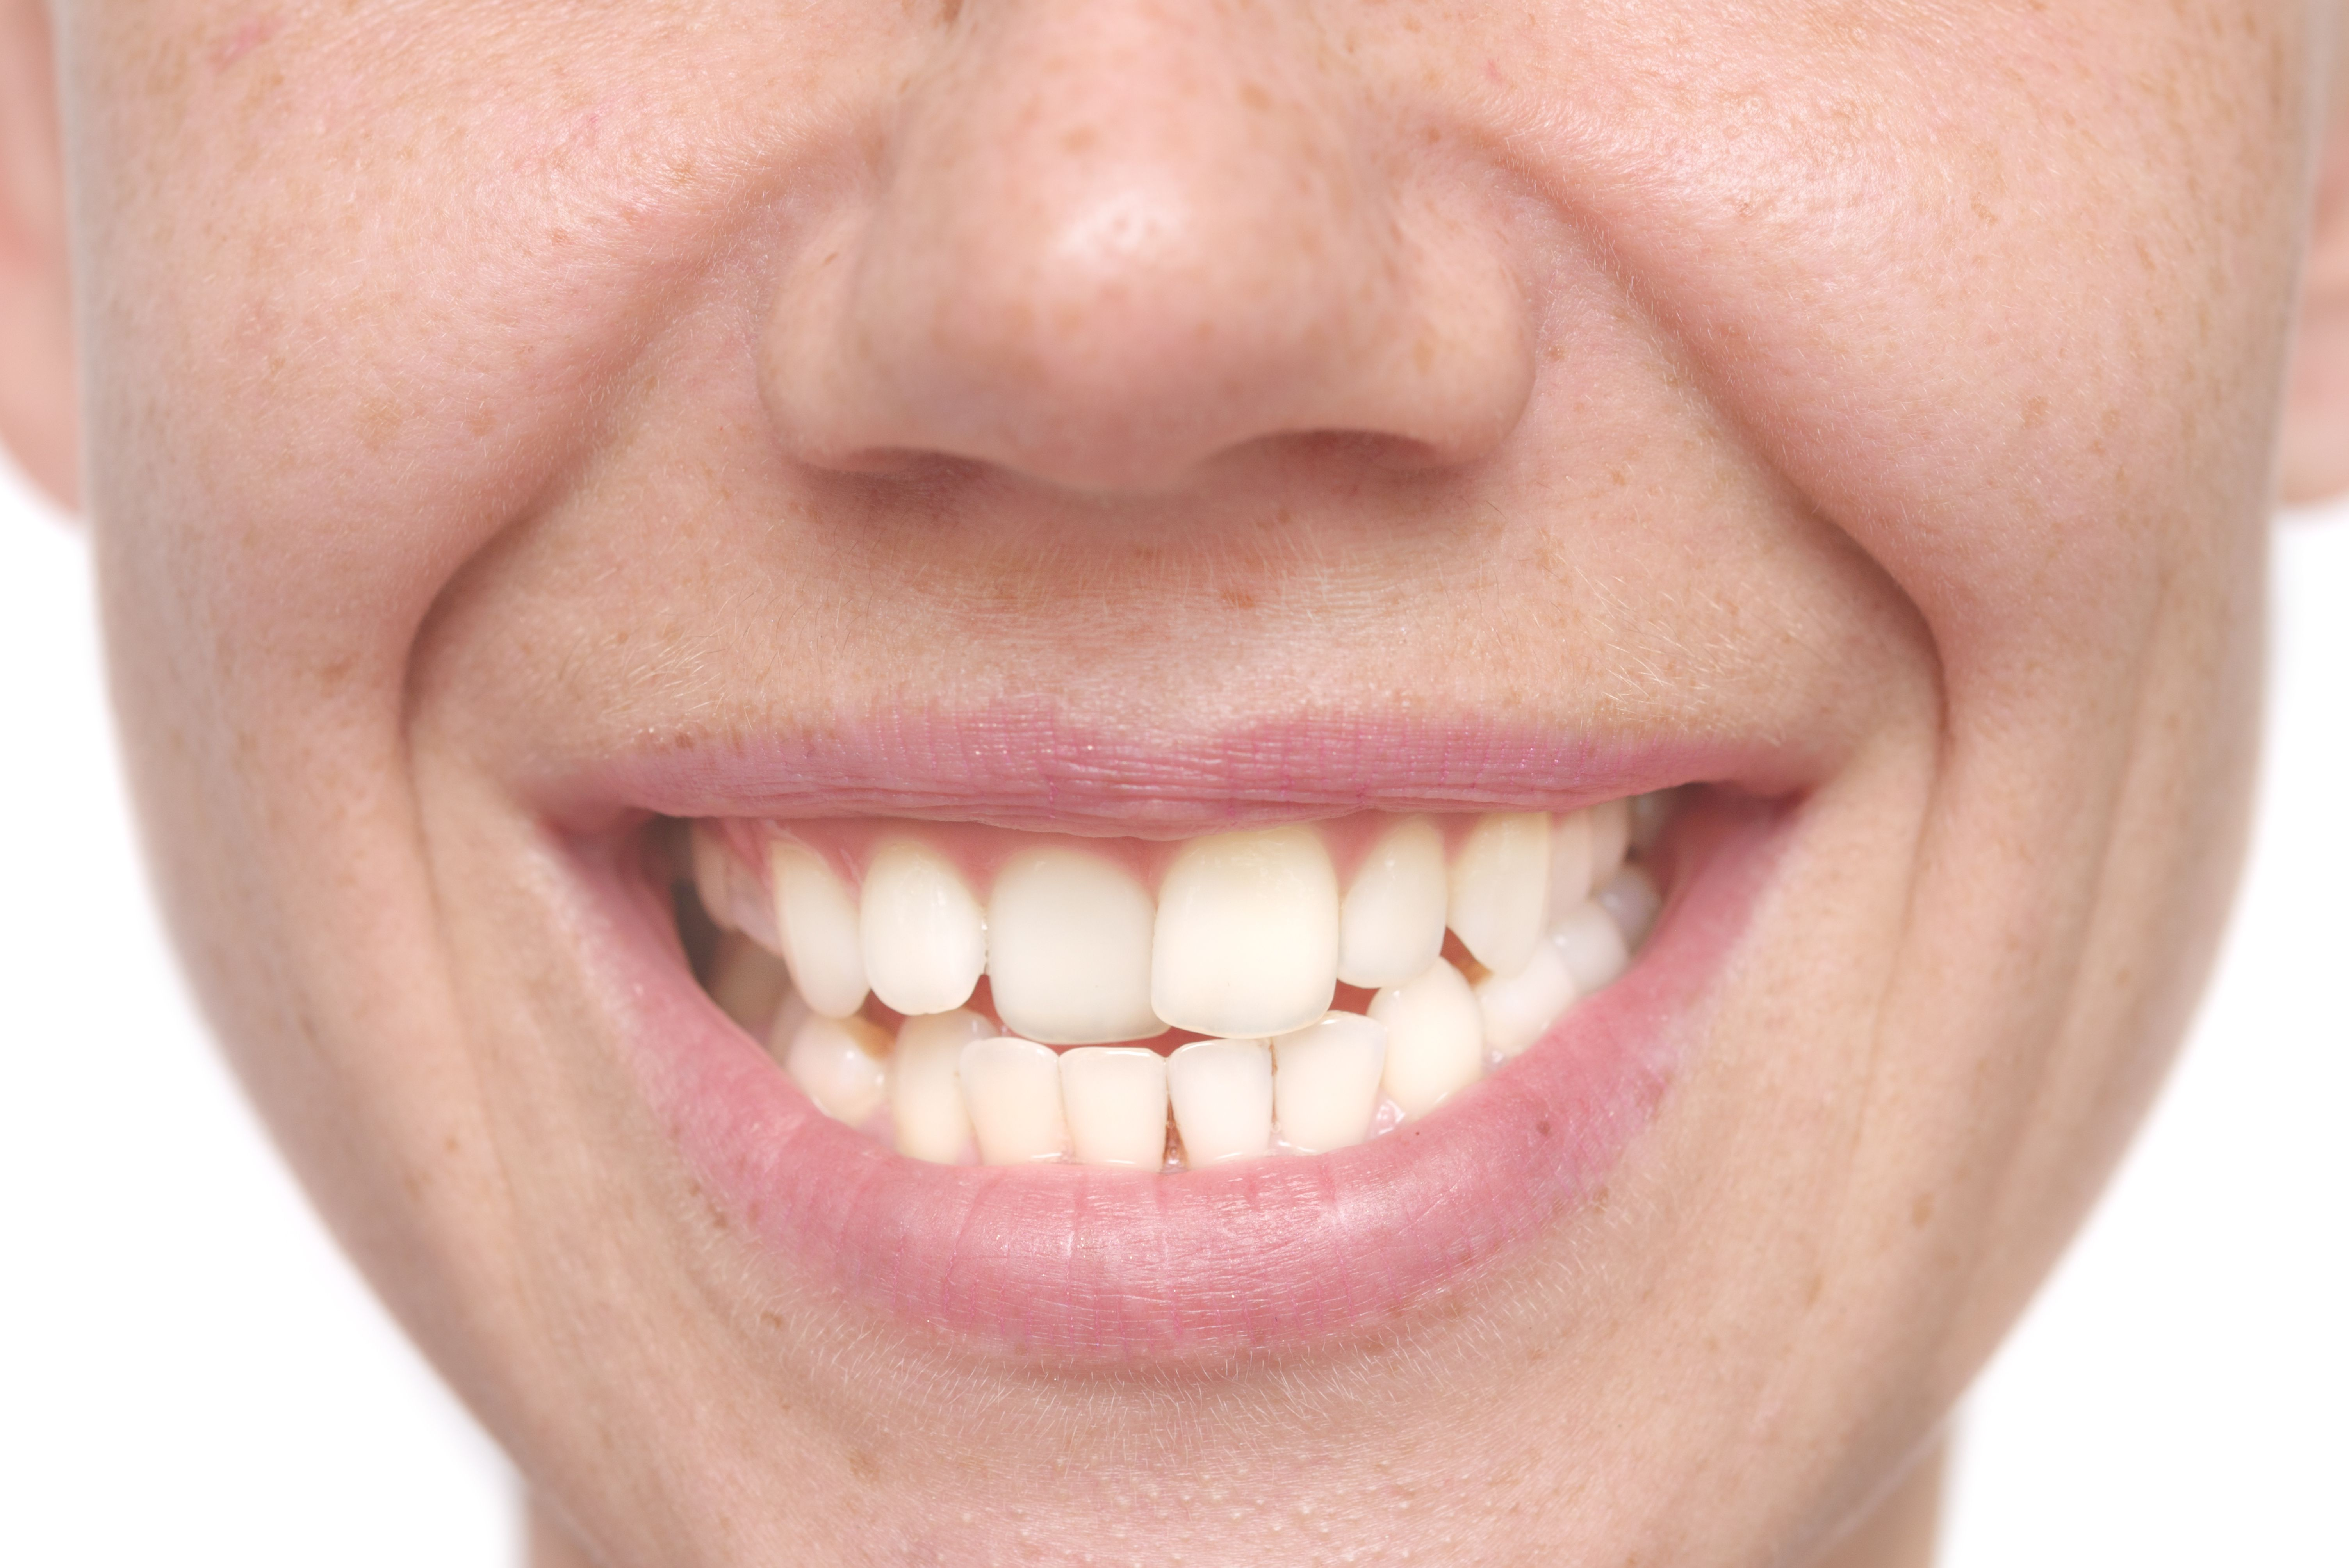 A person with crooked teeth and an uneven smile